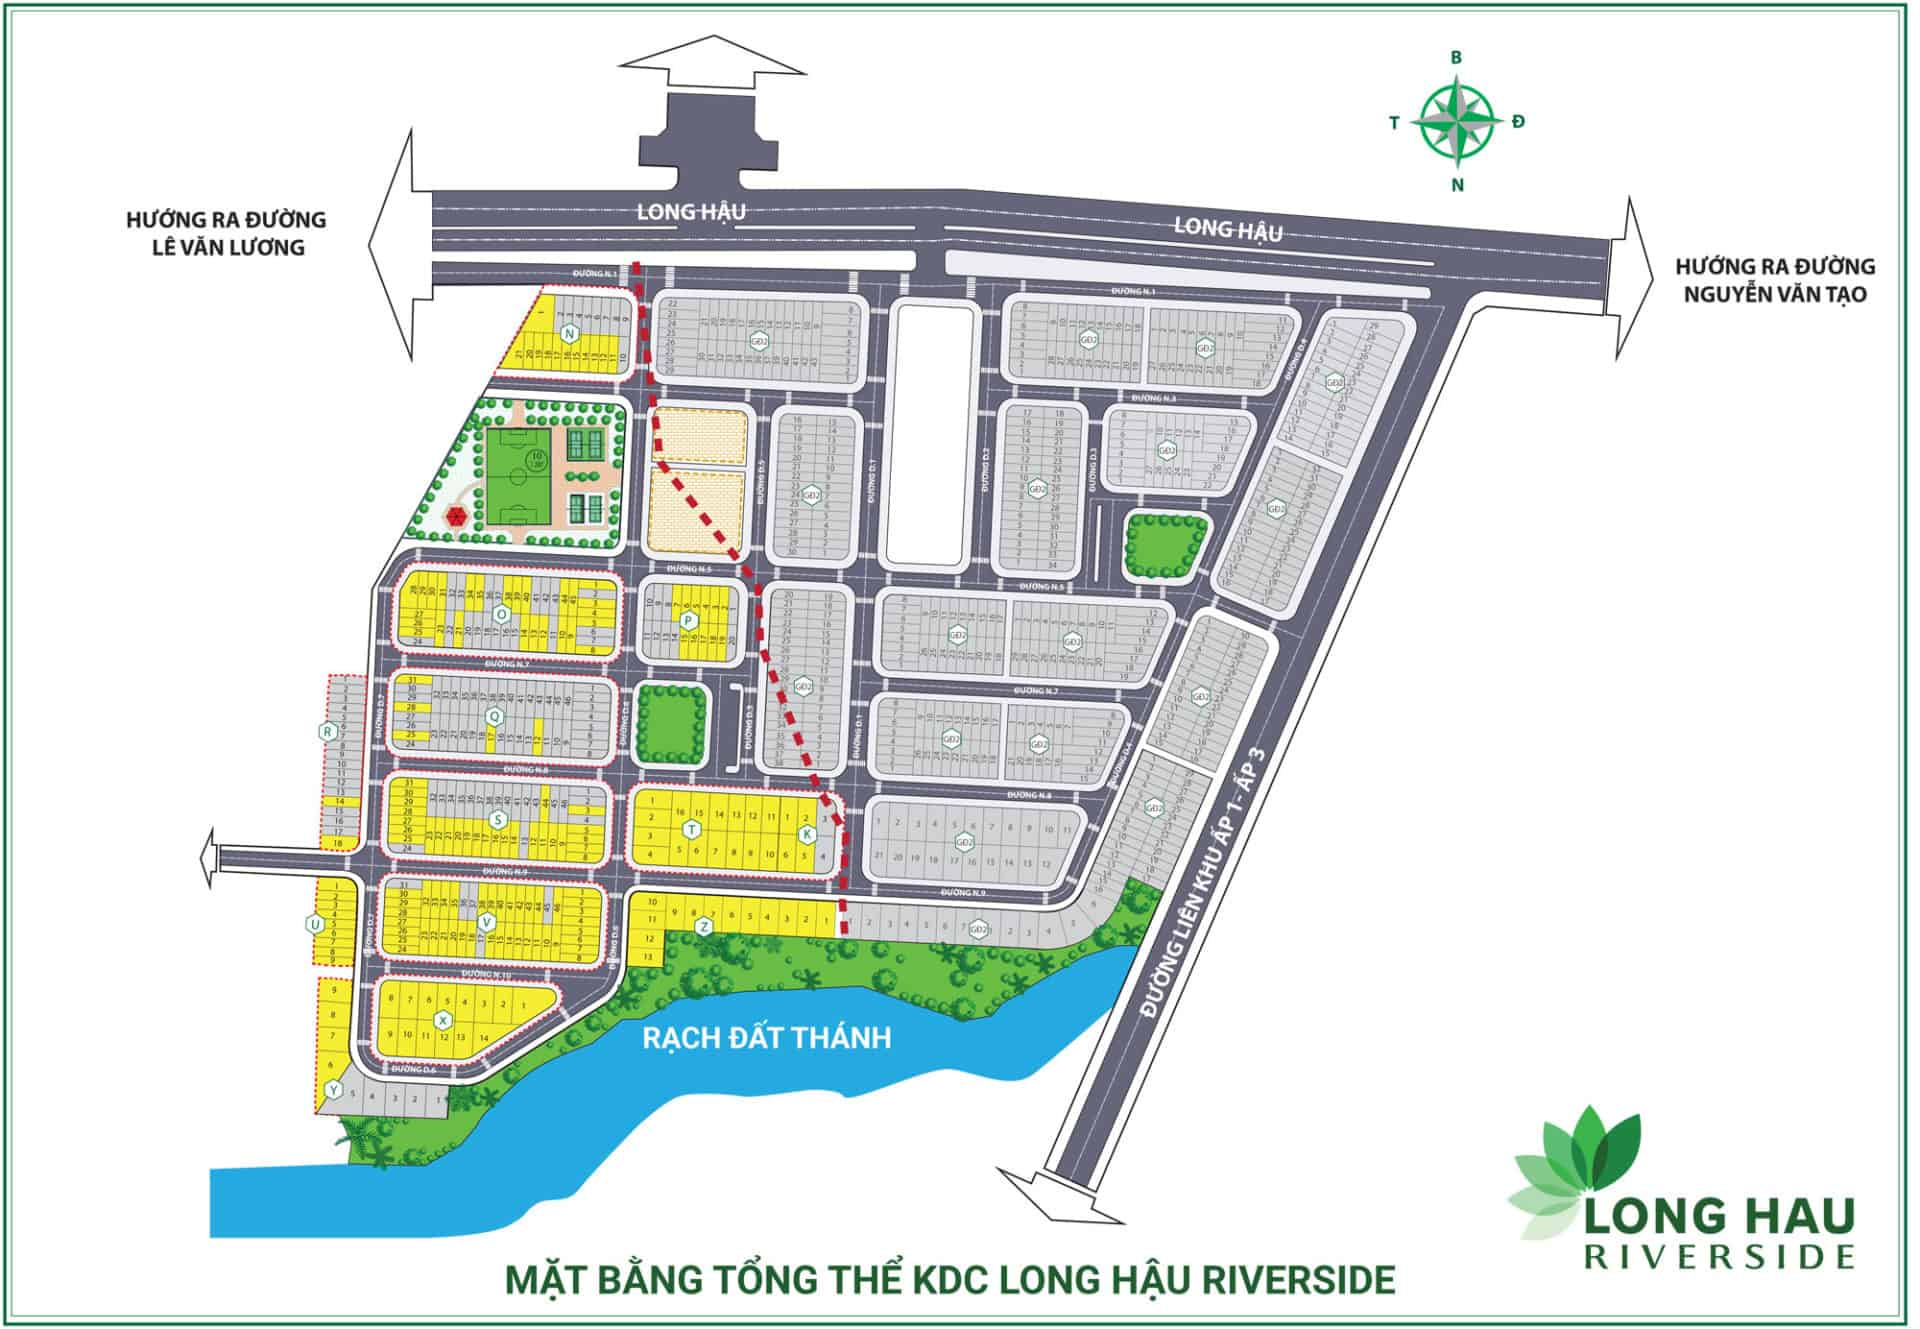 du an long hau riverside 14 - Dự án Long Hậu Riverside